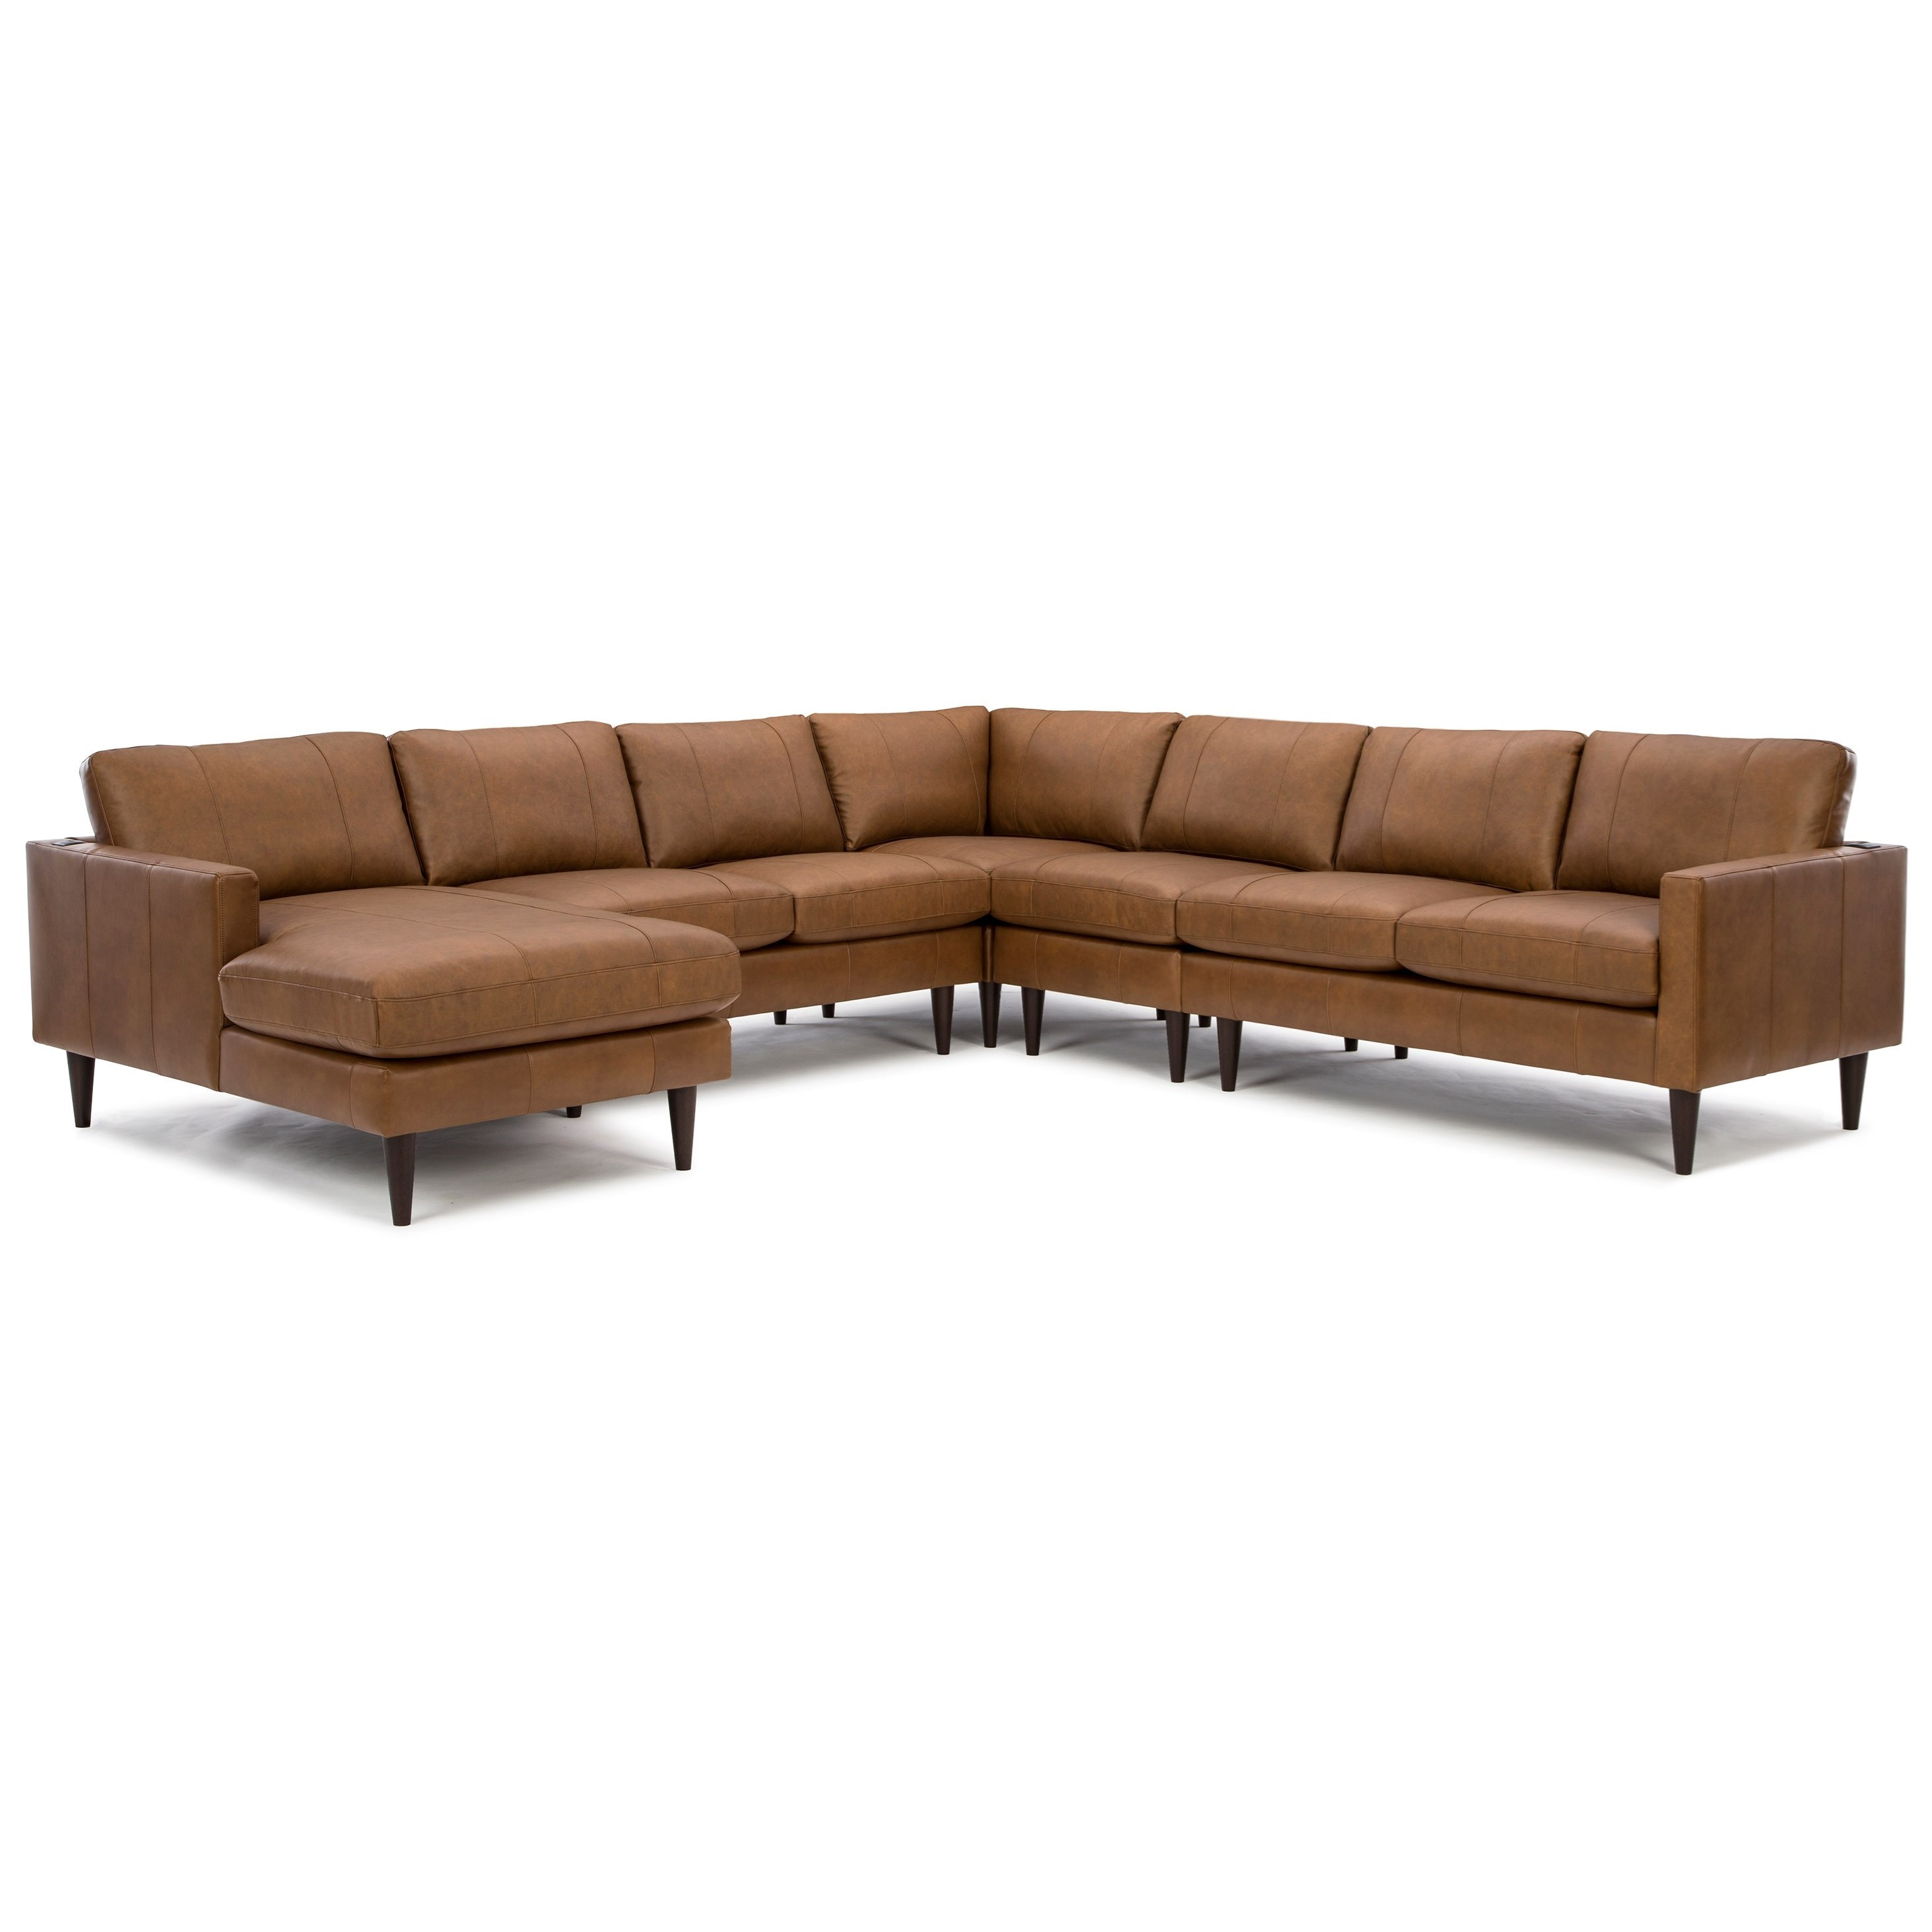 Trafton 6-Seat Sectional Sofa w/ LAF Chaise by Best Home Furnishings at Best Home Furnishings